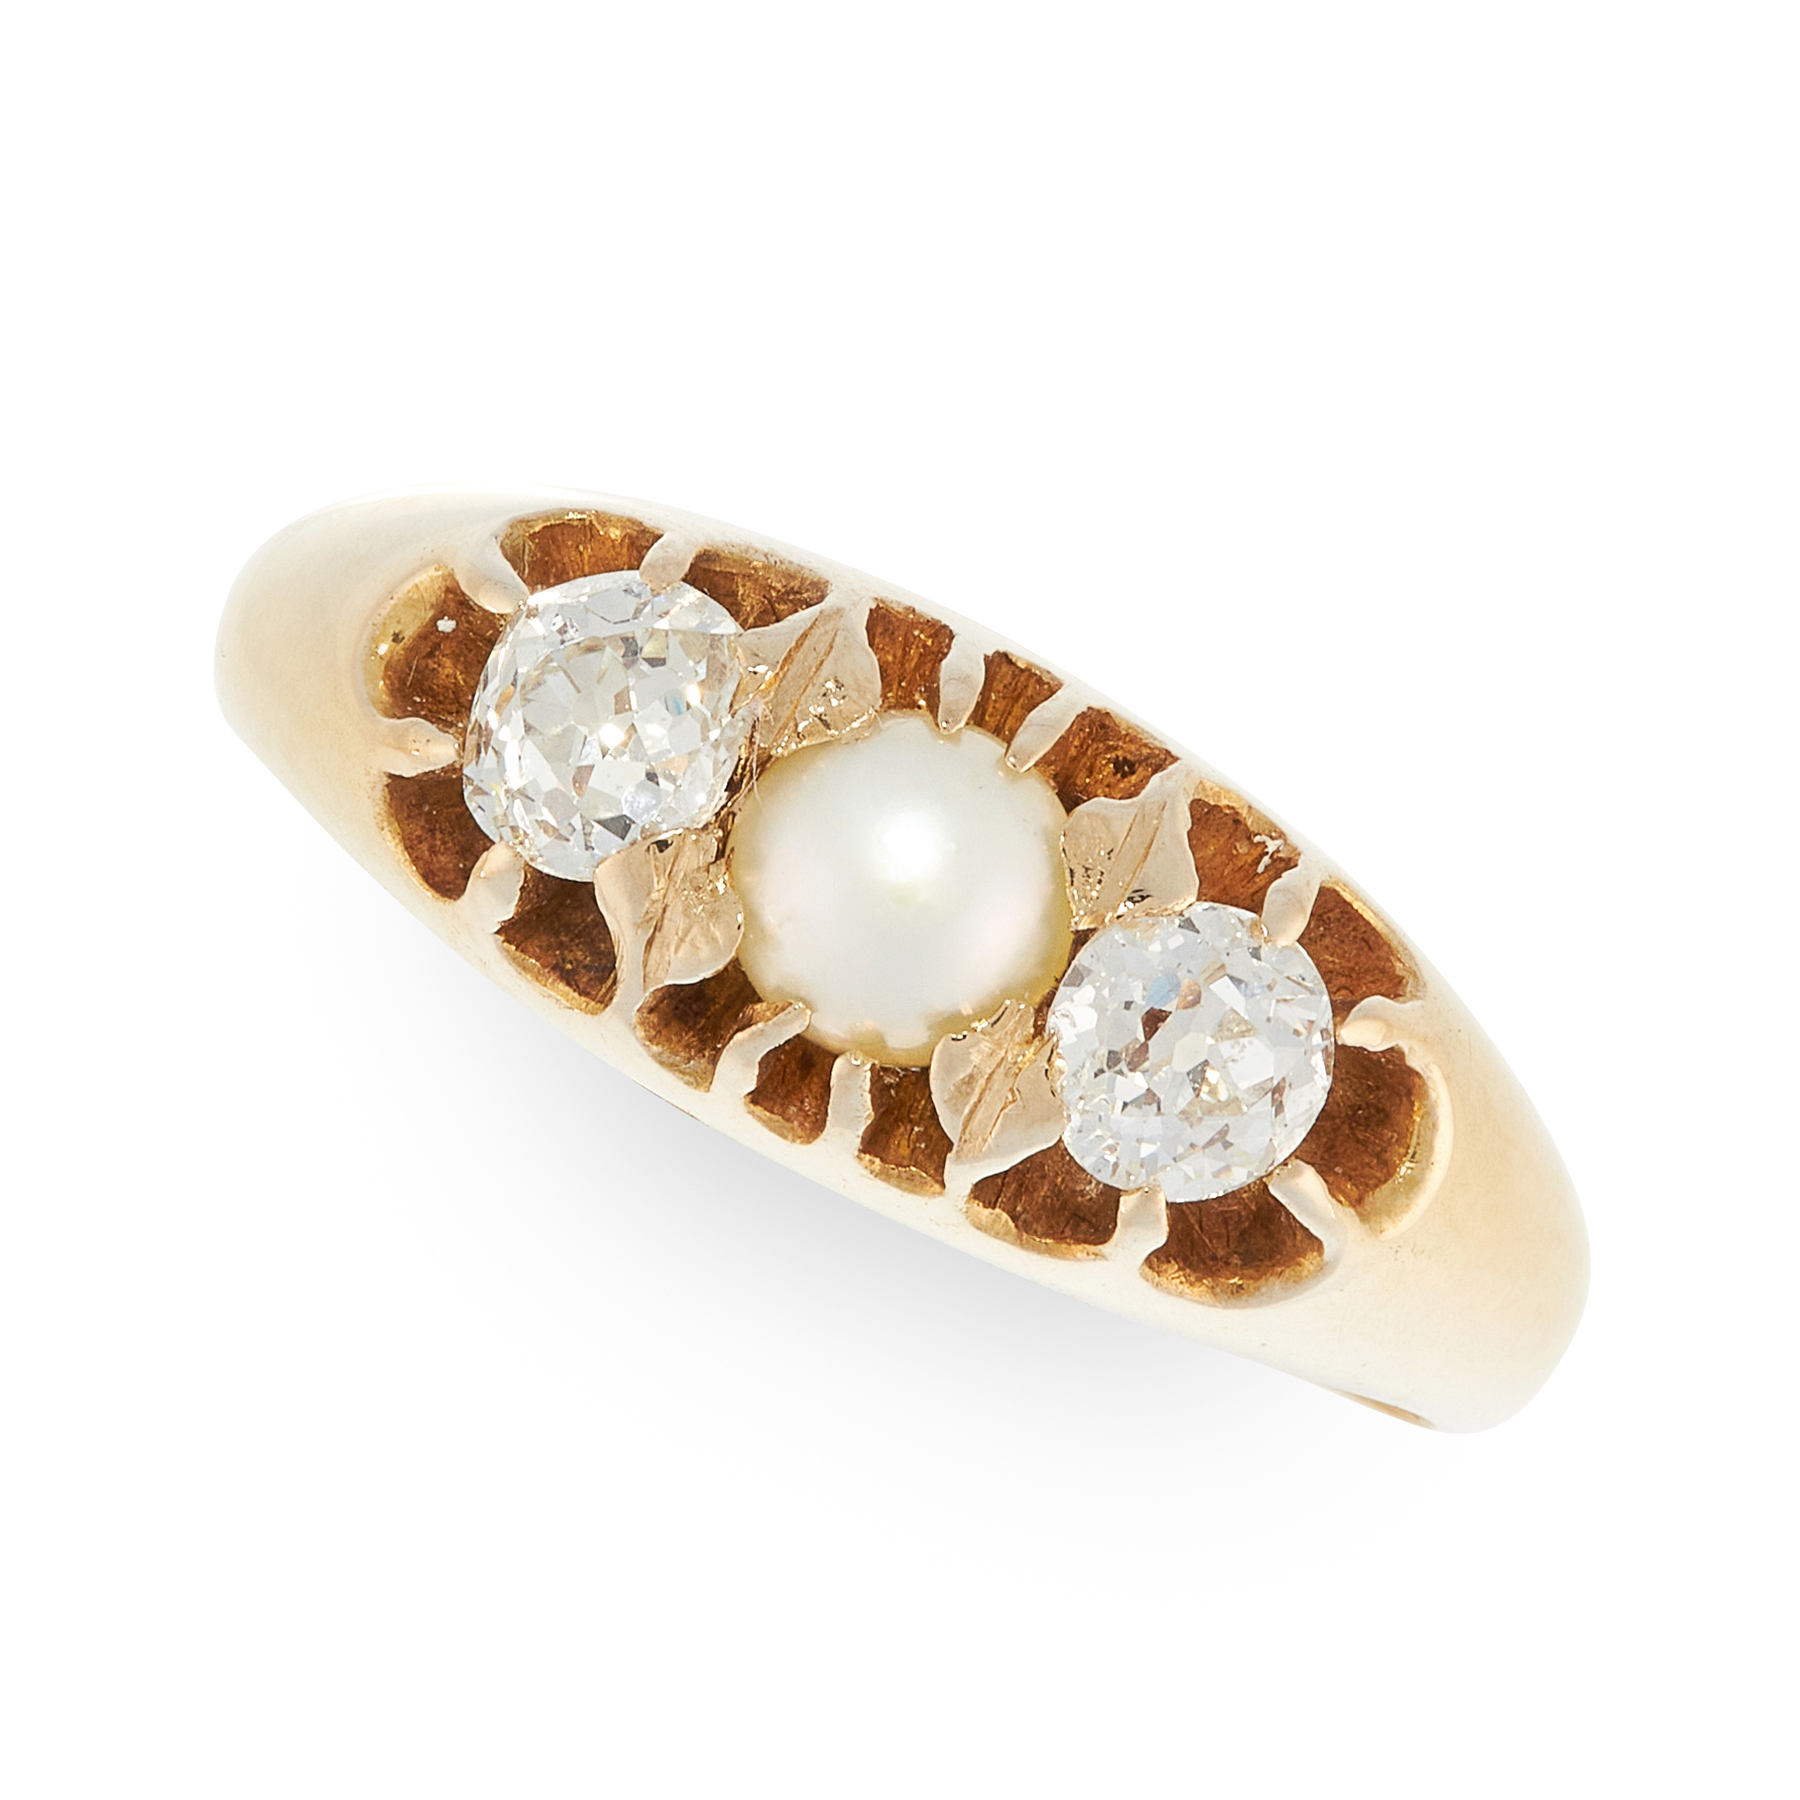 AN ANTIQUE PEARL AND DIAMOND RING in yellow gold, set with a pearl of 4.6mm between two old old